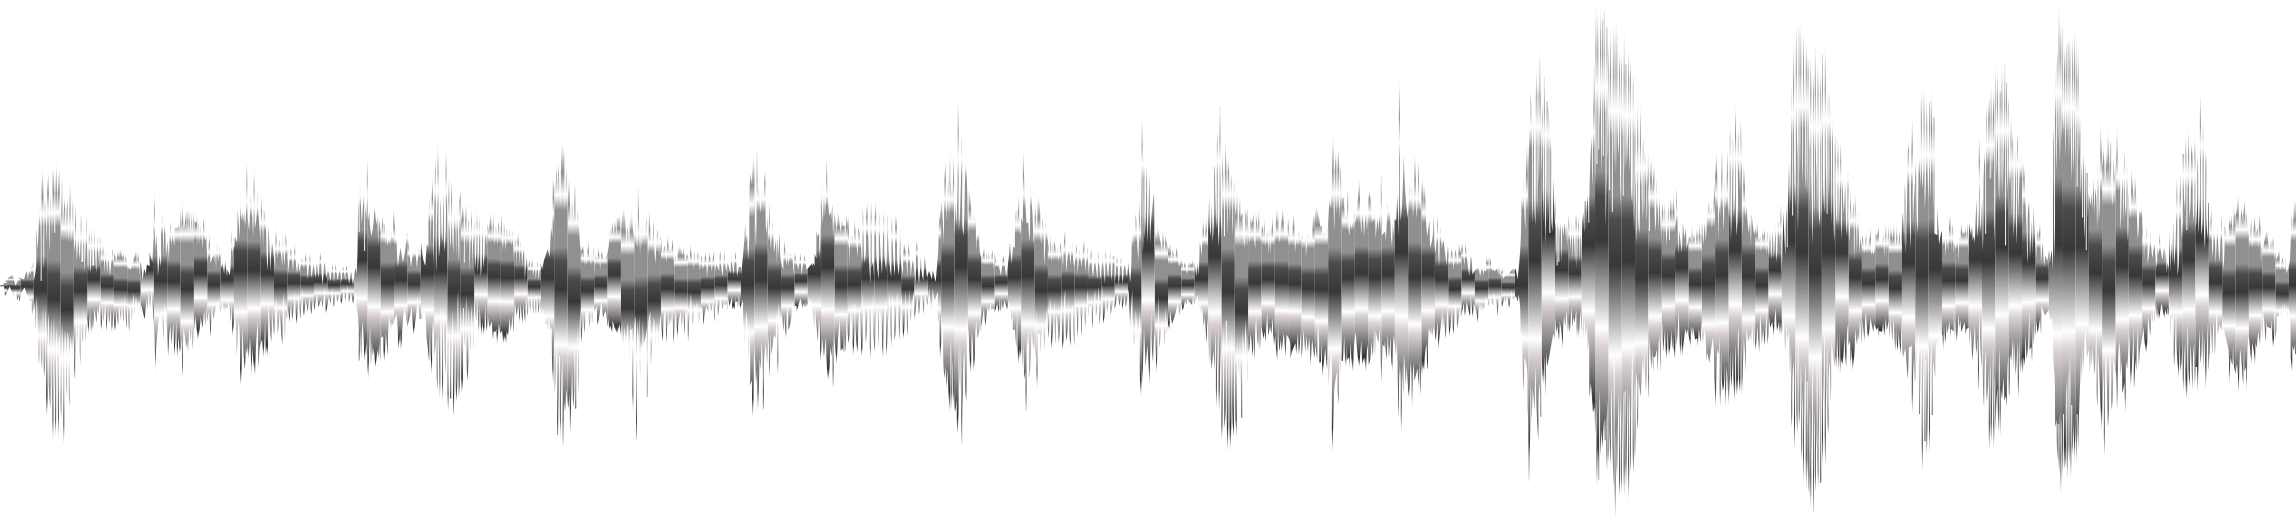 Stainless steel sound wave. Waves clipart clear background